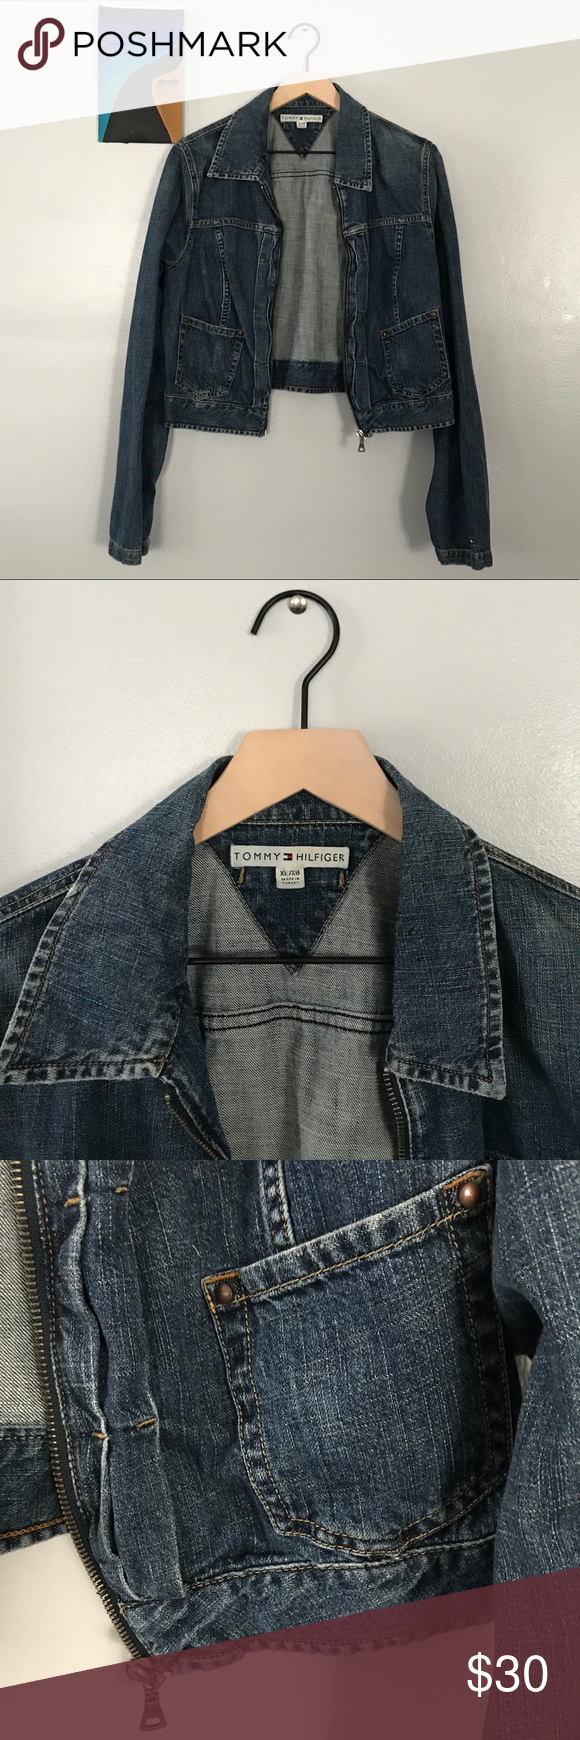 70ce737697358 Women's Tommy Hilfiger Denim Jacket Circa 2003 Vintage Tommy Hilfiger denim  jacket, short and light